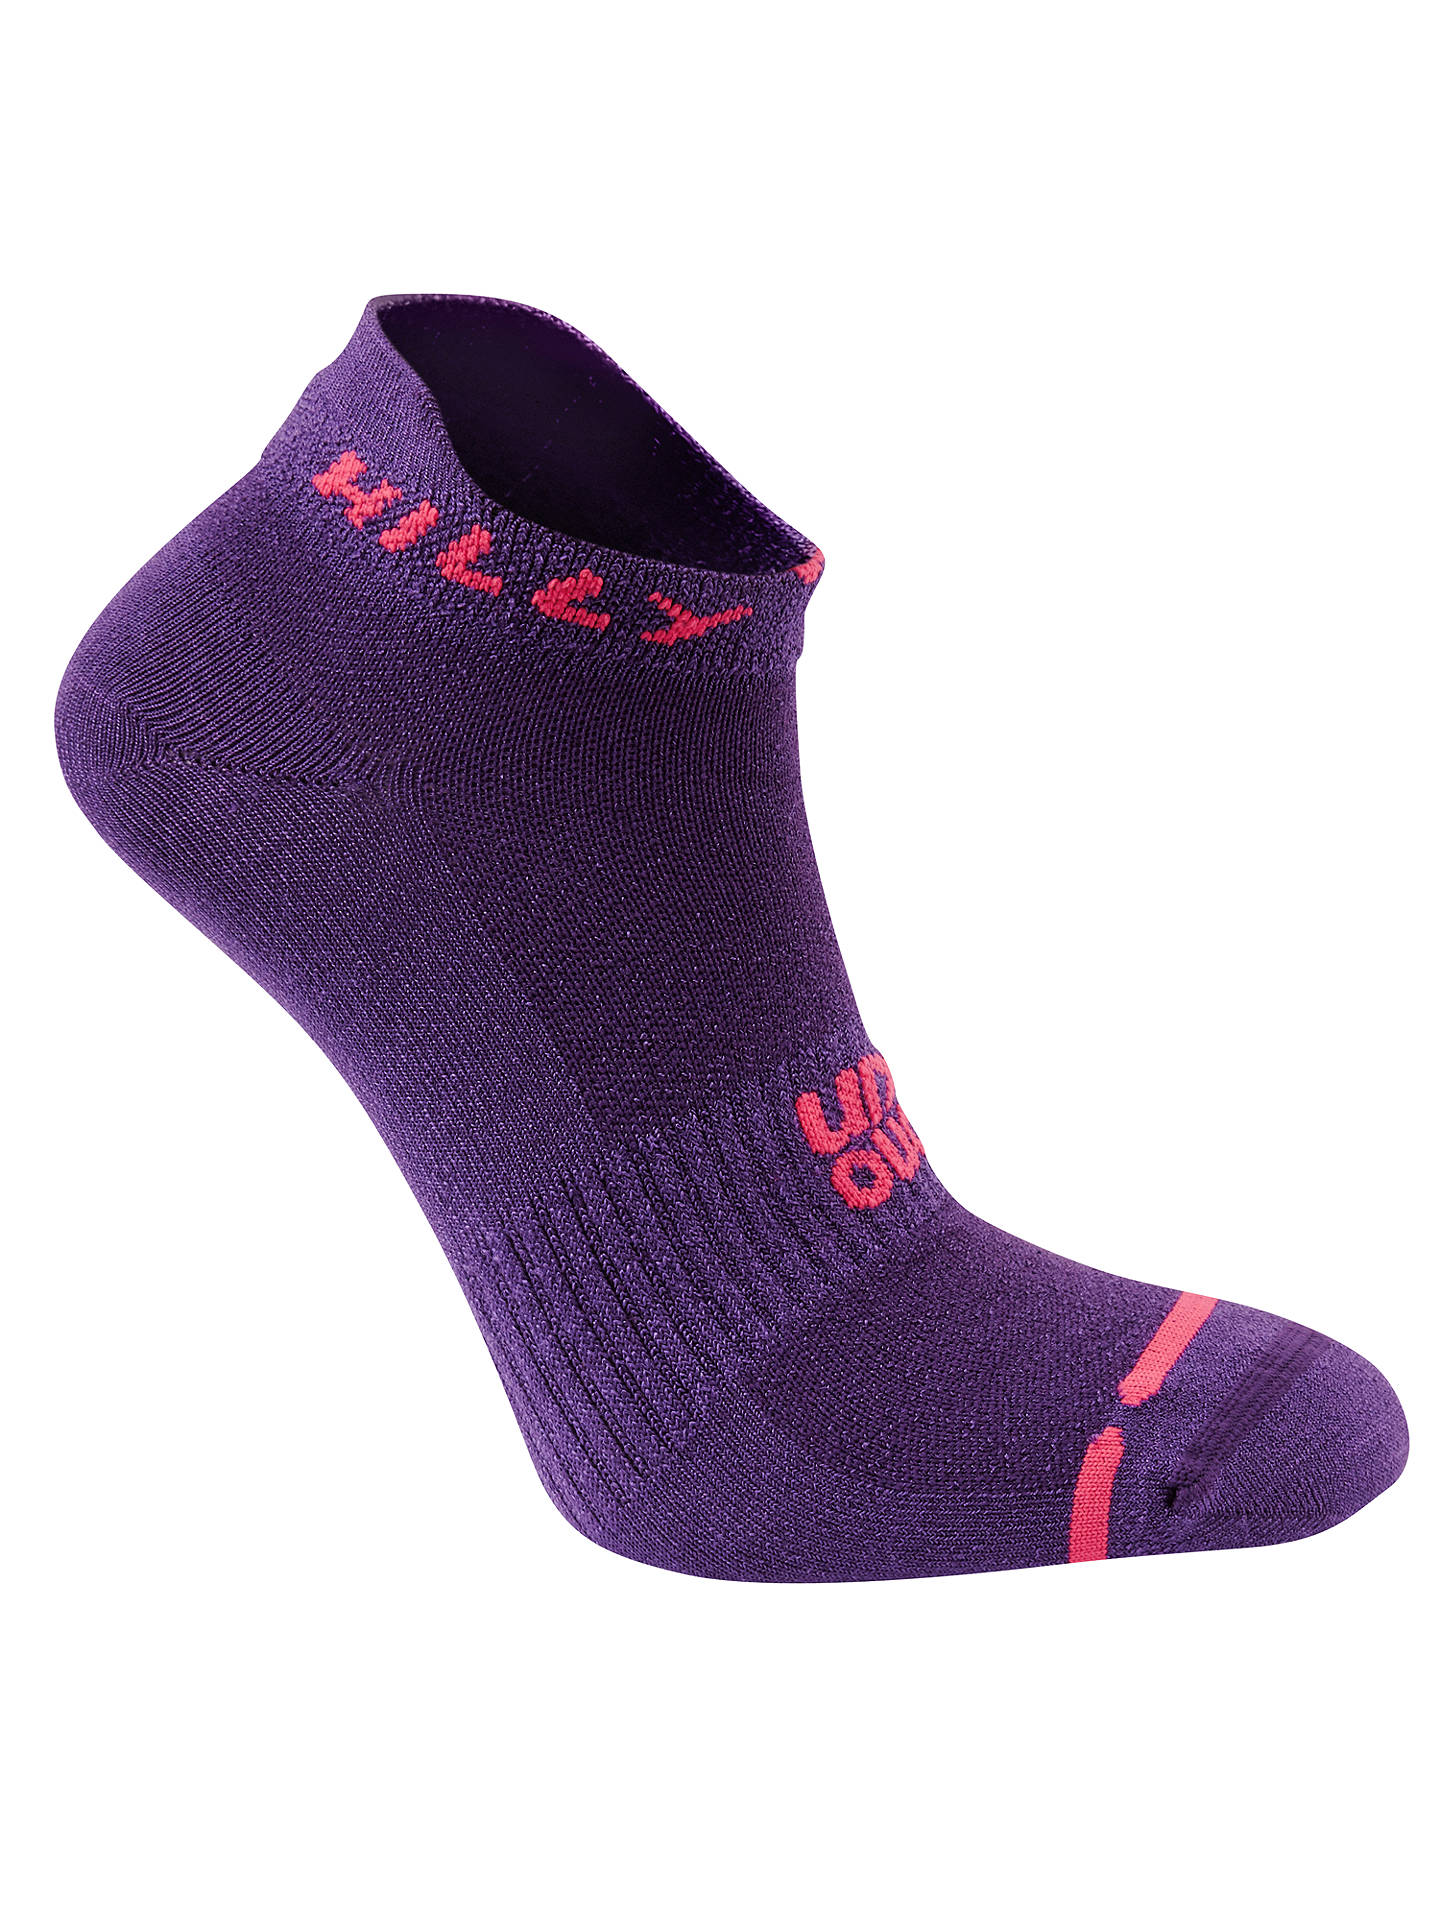 BuyHilly Lite Running Socklets, Single Pair, Purple, 3-5.5 Online at johnlewis.com